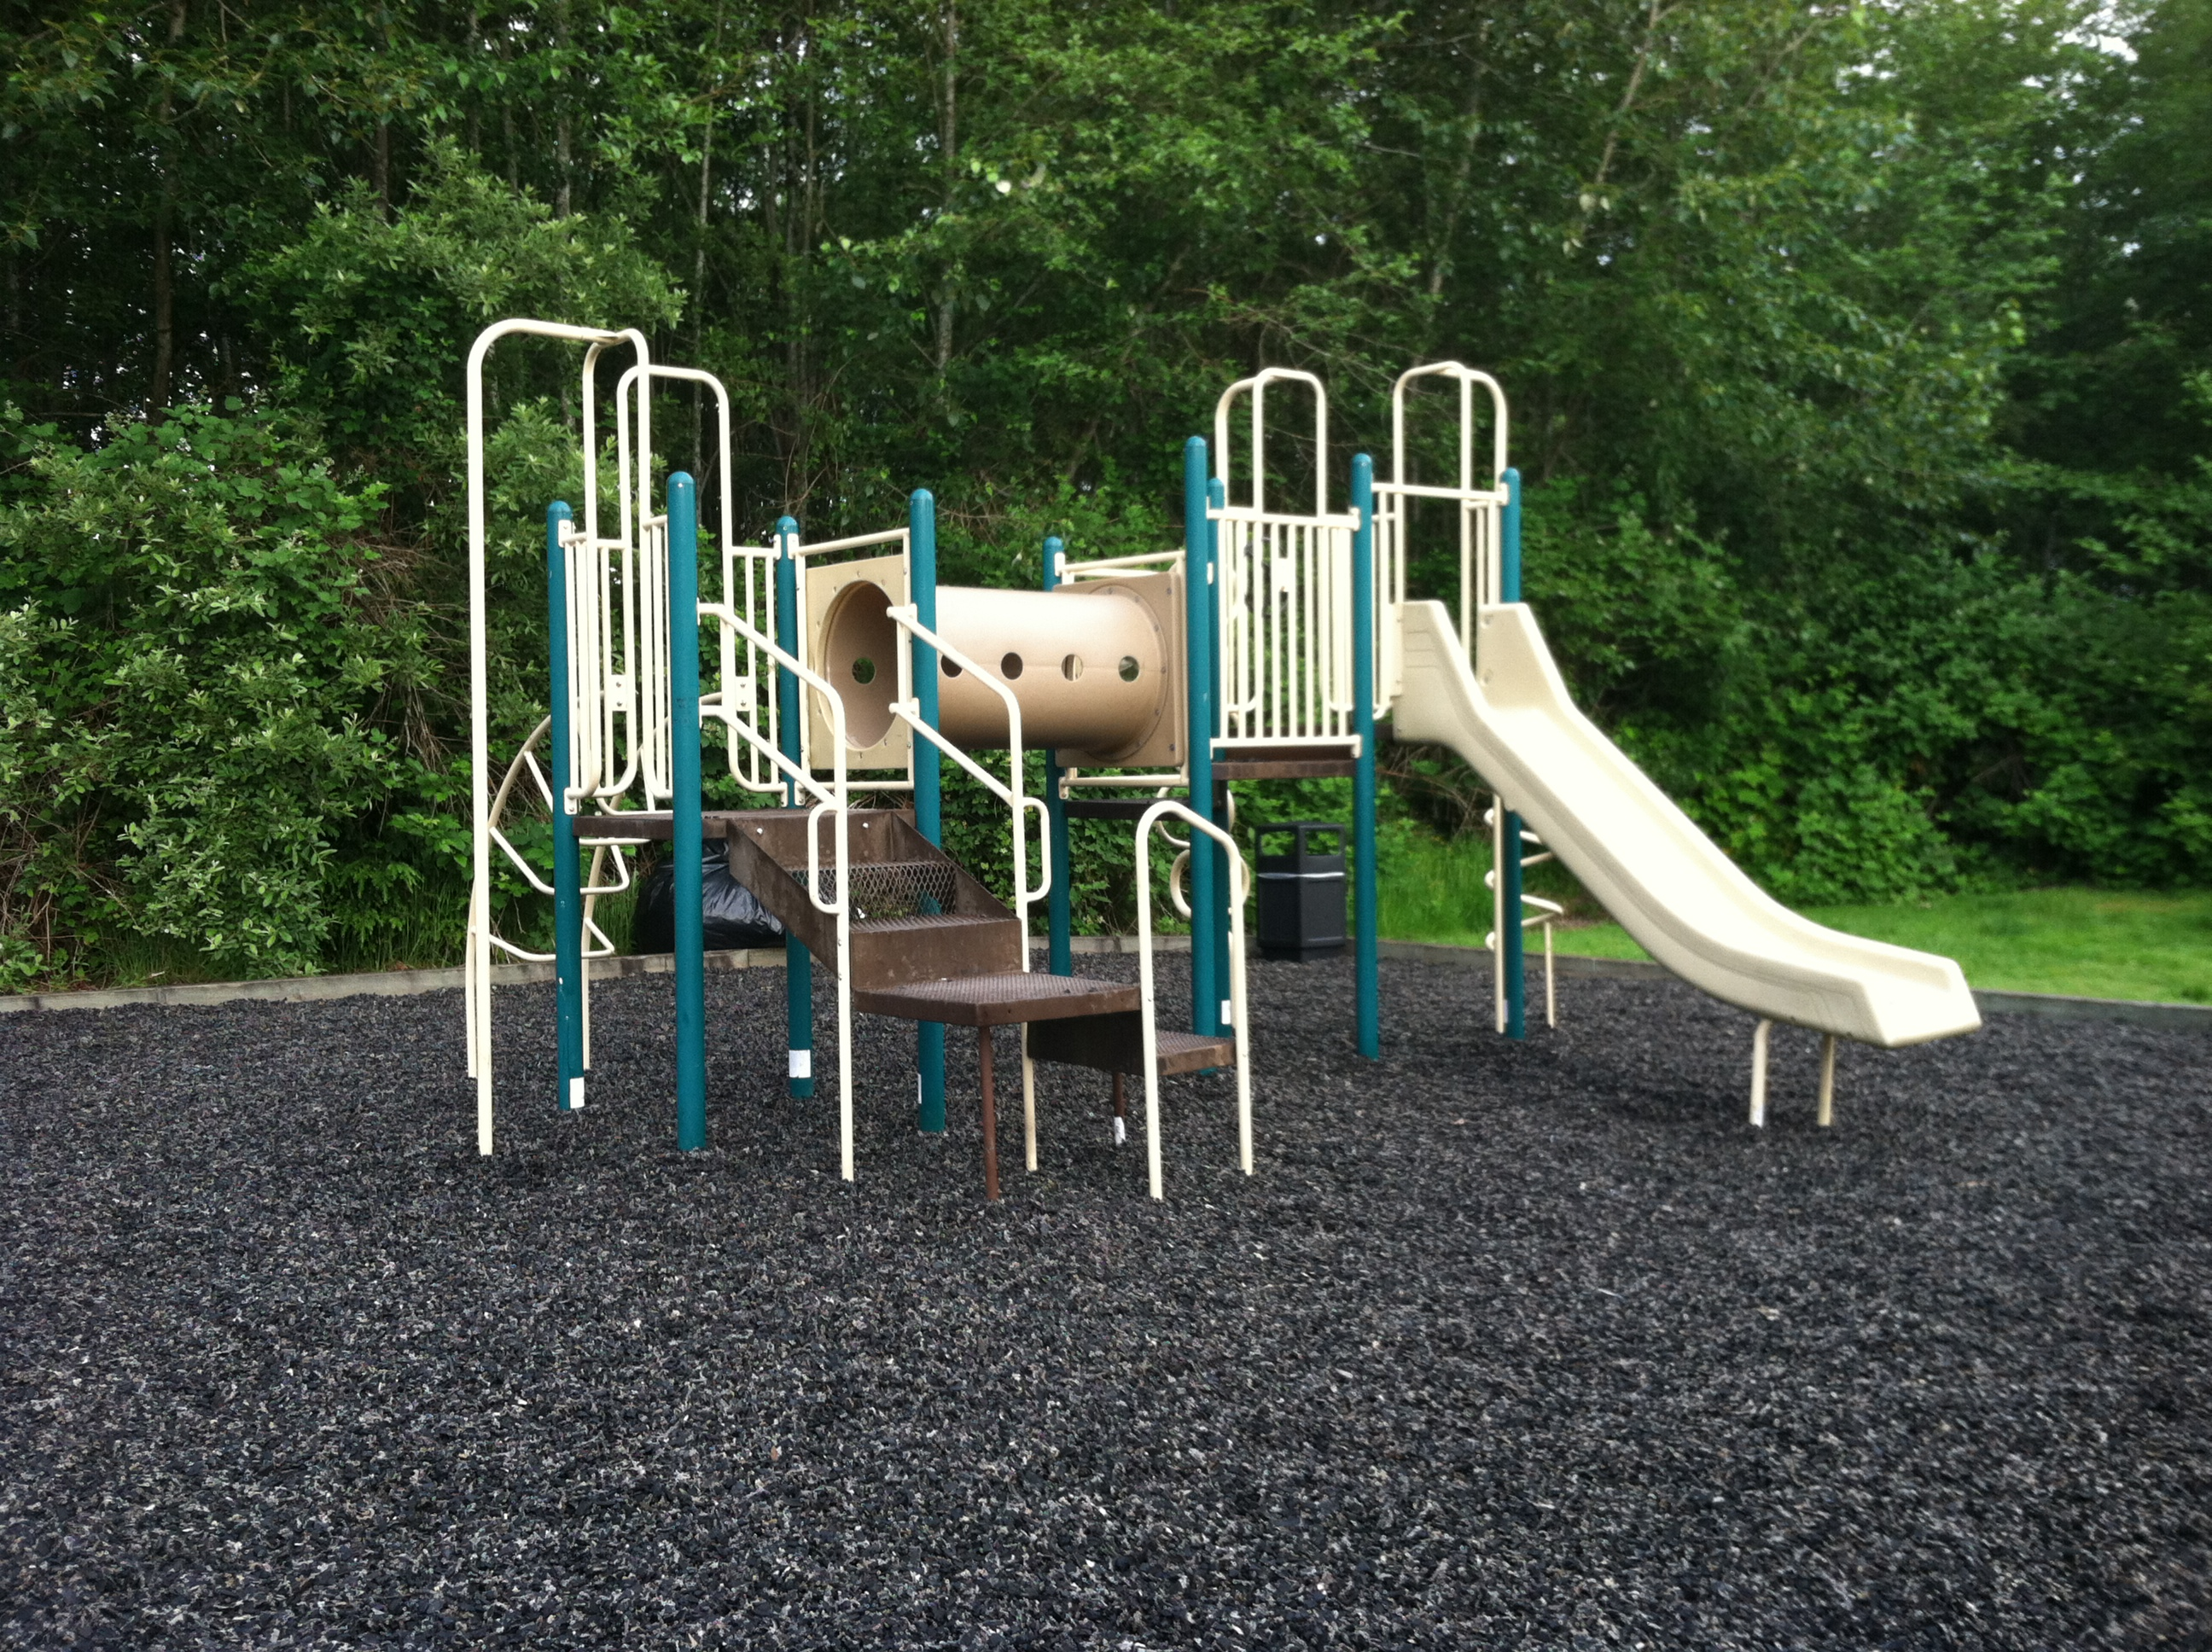 What Are Benefits of Rubber Mulch?